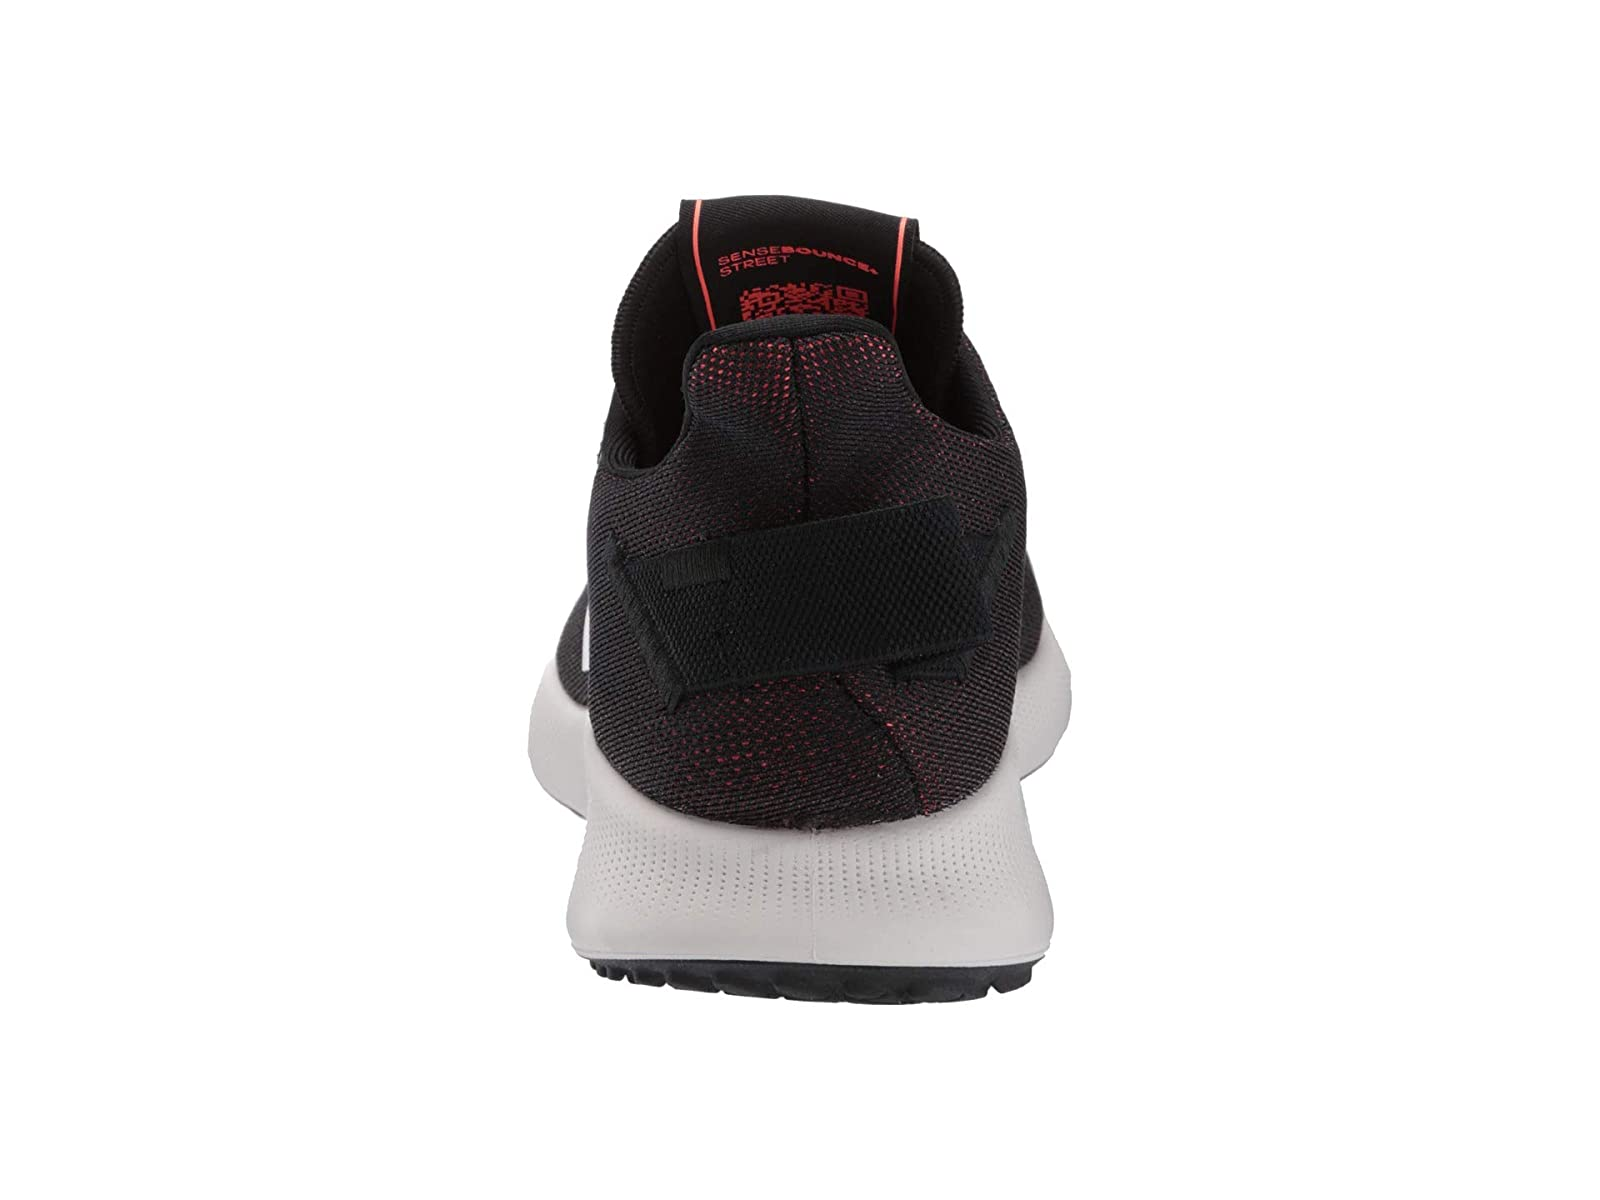 Man-039-s-Sneakers-amp-Athletic-Shoes-adidas-Running-SenseBOUNCE-Street thumbnail 6